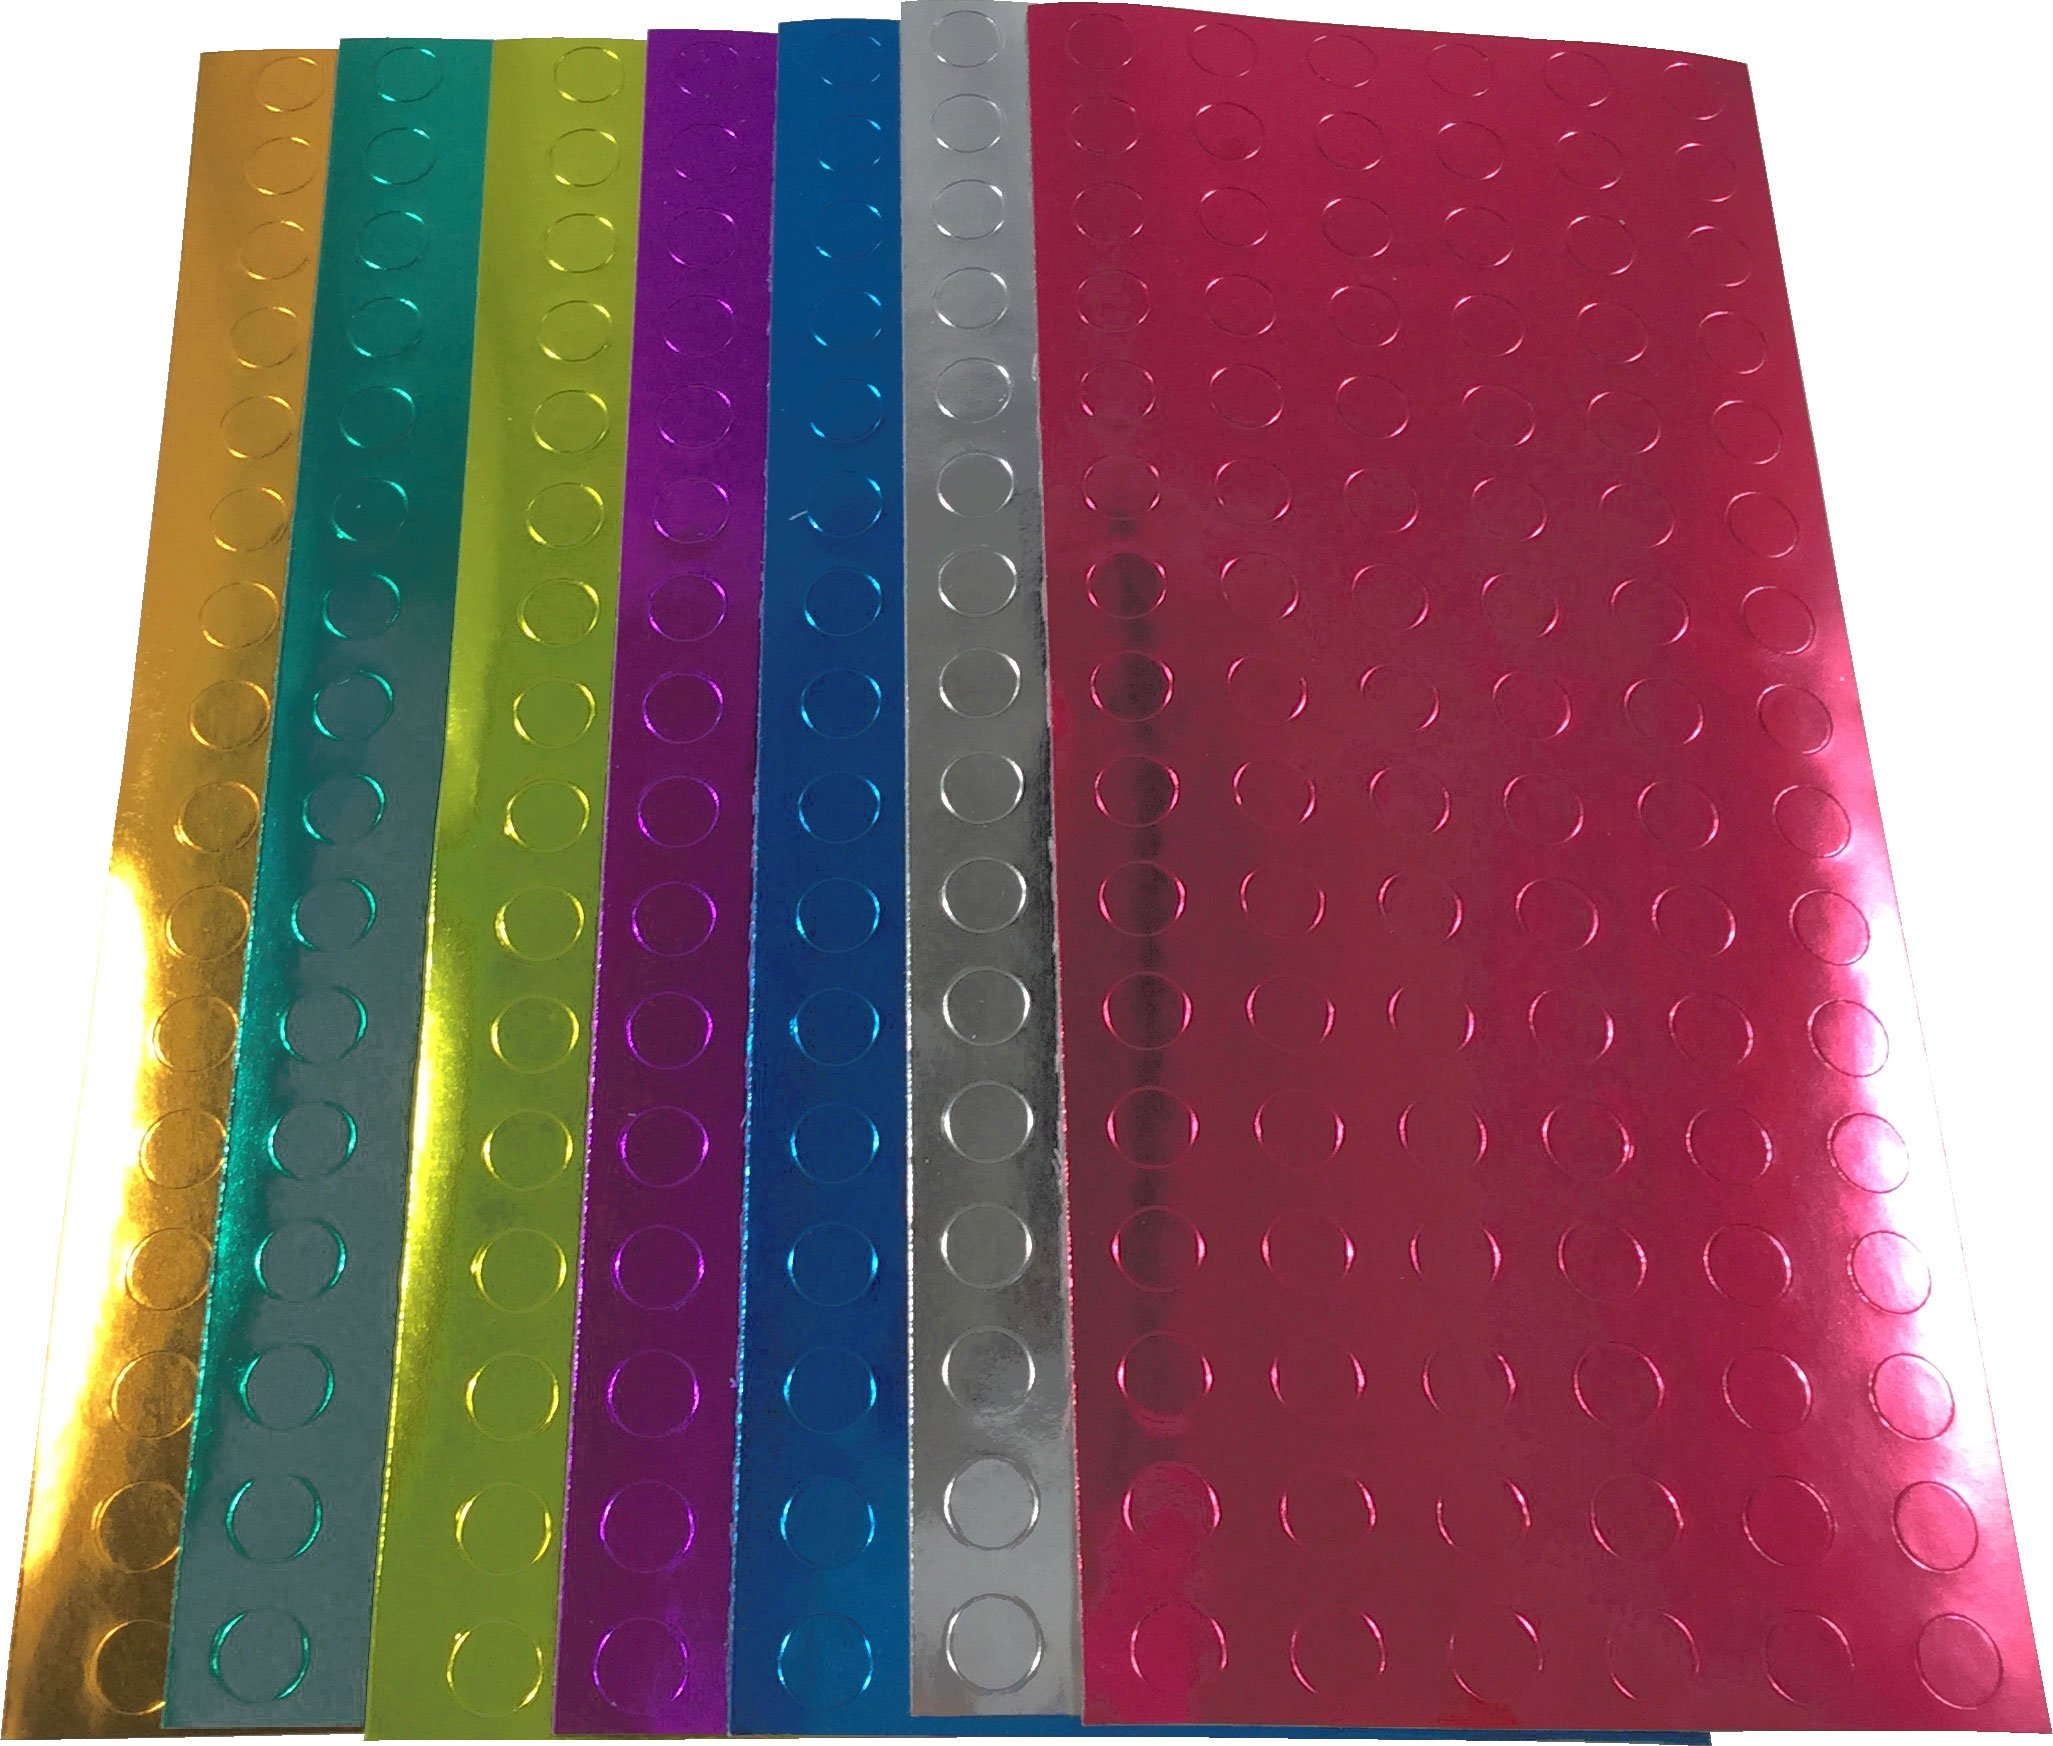 Color Coding Dot Labels For Office Teacher Supplies 1/4 Inch Metallic Assortment Pack 1,344 Stickers 192 Each Color, Silver, Copper, Gold, Blue, Purple, Red, Green